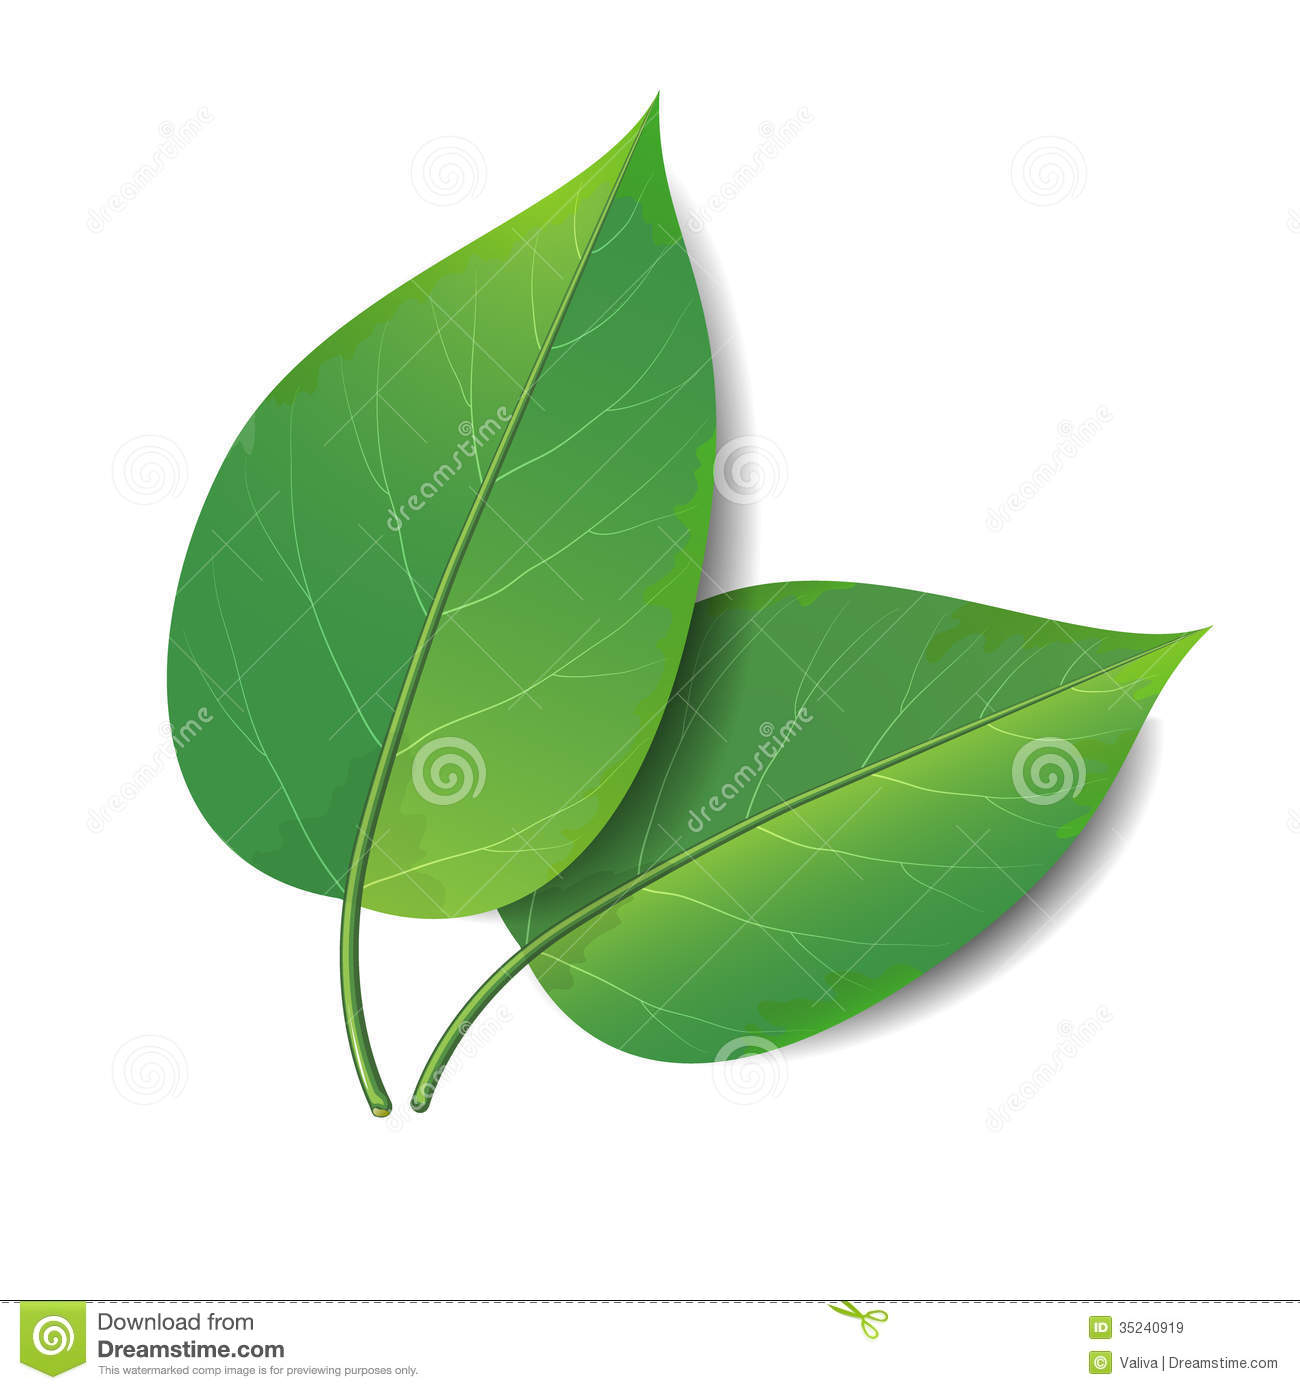 Green Leaves Royalty Free Stock Images - Image: 35240919